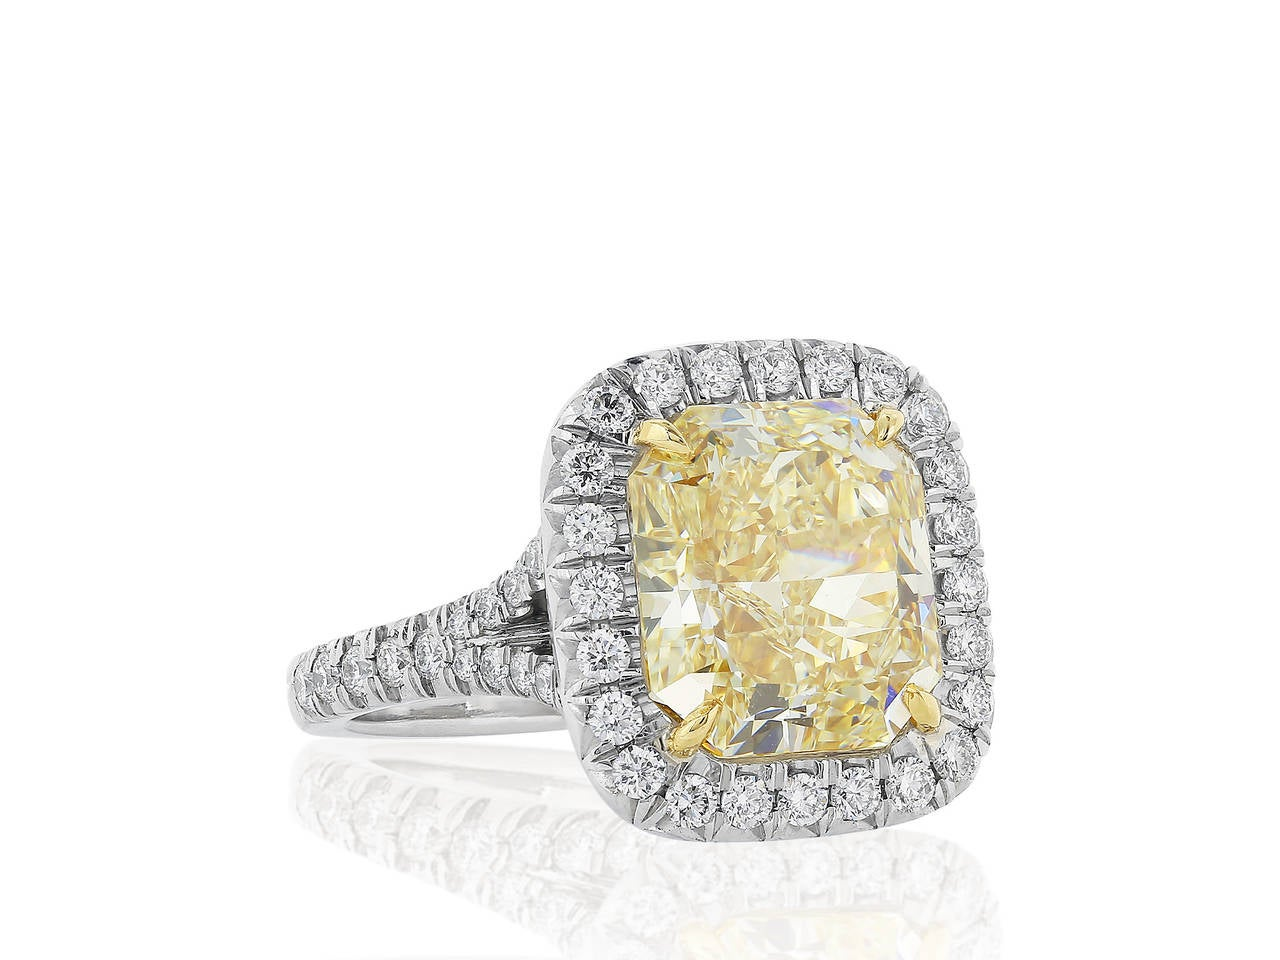 Platinum and 18 karat yellow gold halo ring consisting of 1 radiant cut canary diamond weighing 5.27 carats having a color and clarity of FY/VS2 with GIA certificate 2165655048, the center stone is set with full cut diamond accents.